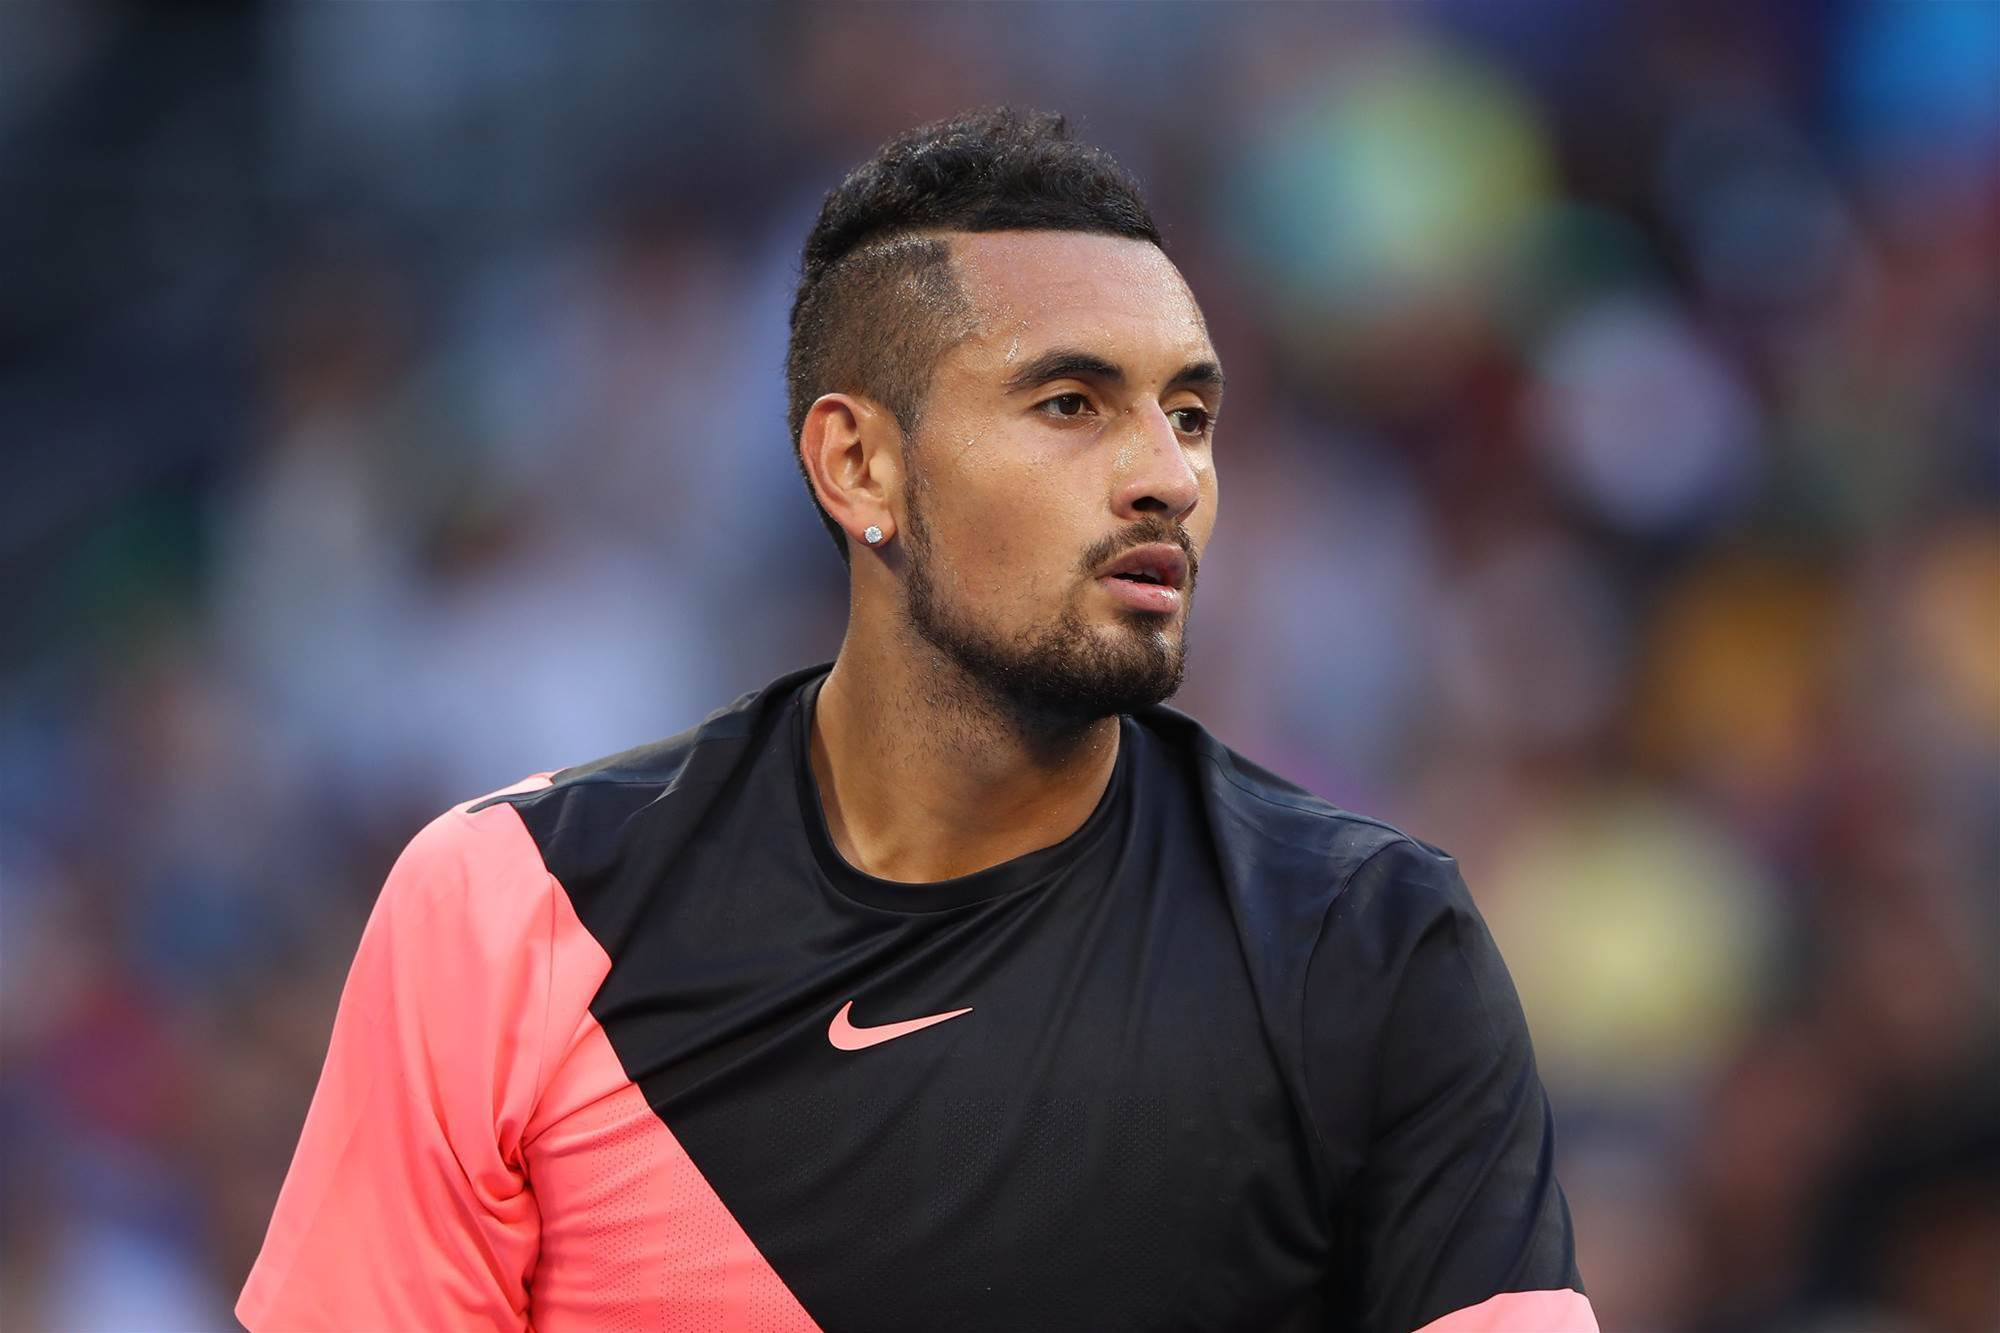 Kyrgios admits to nerves after opening round win